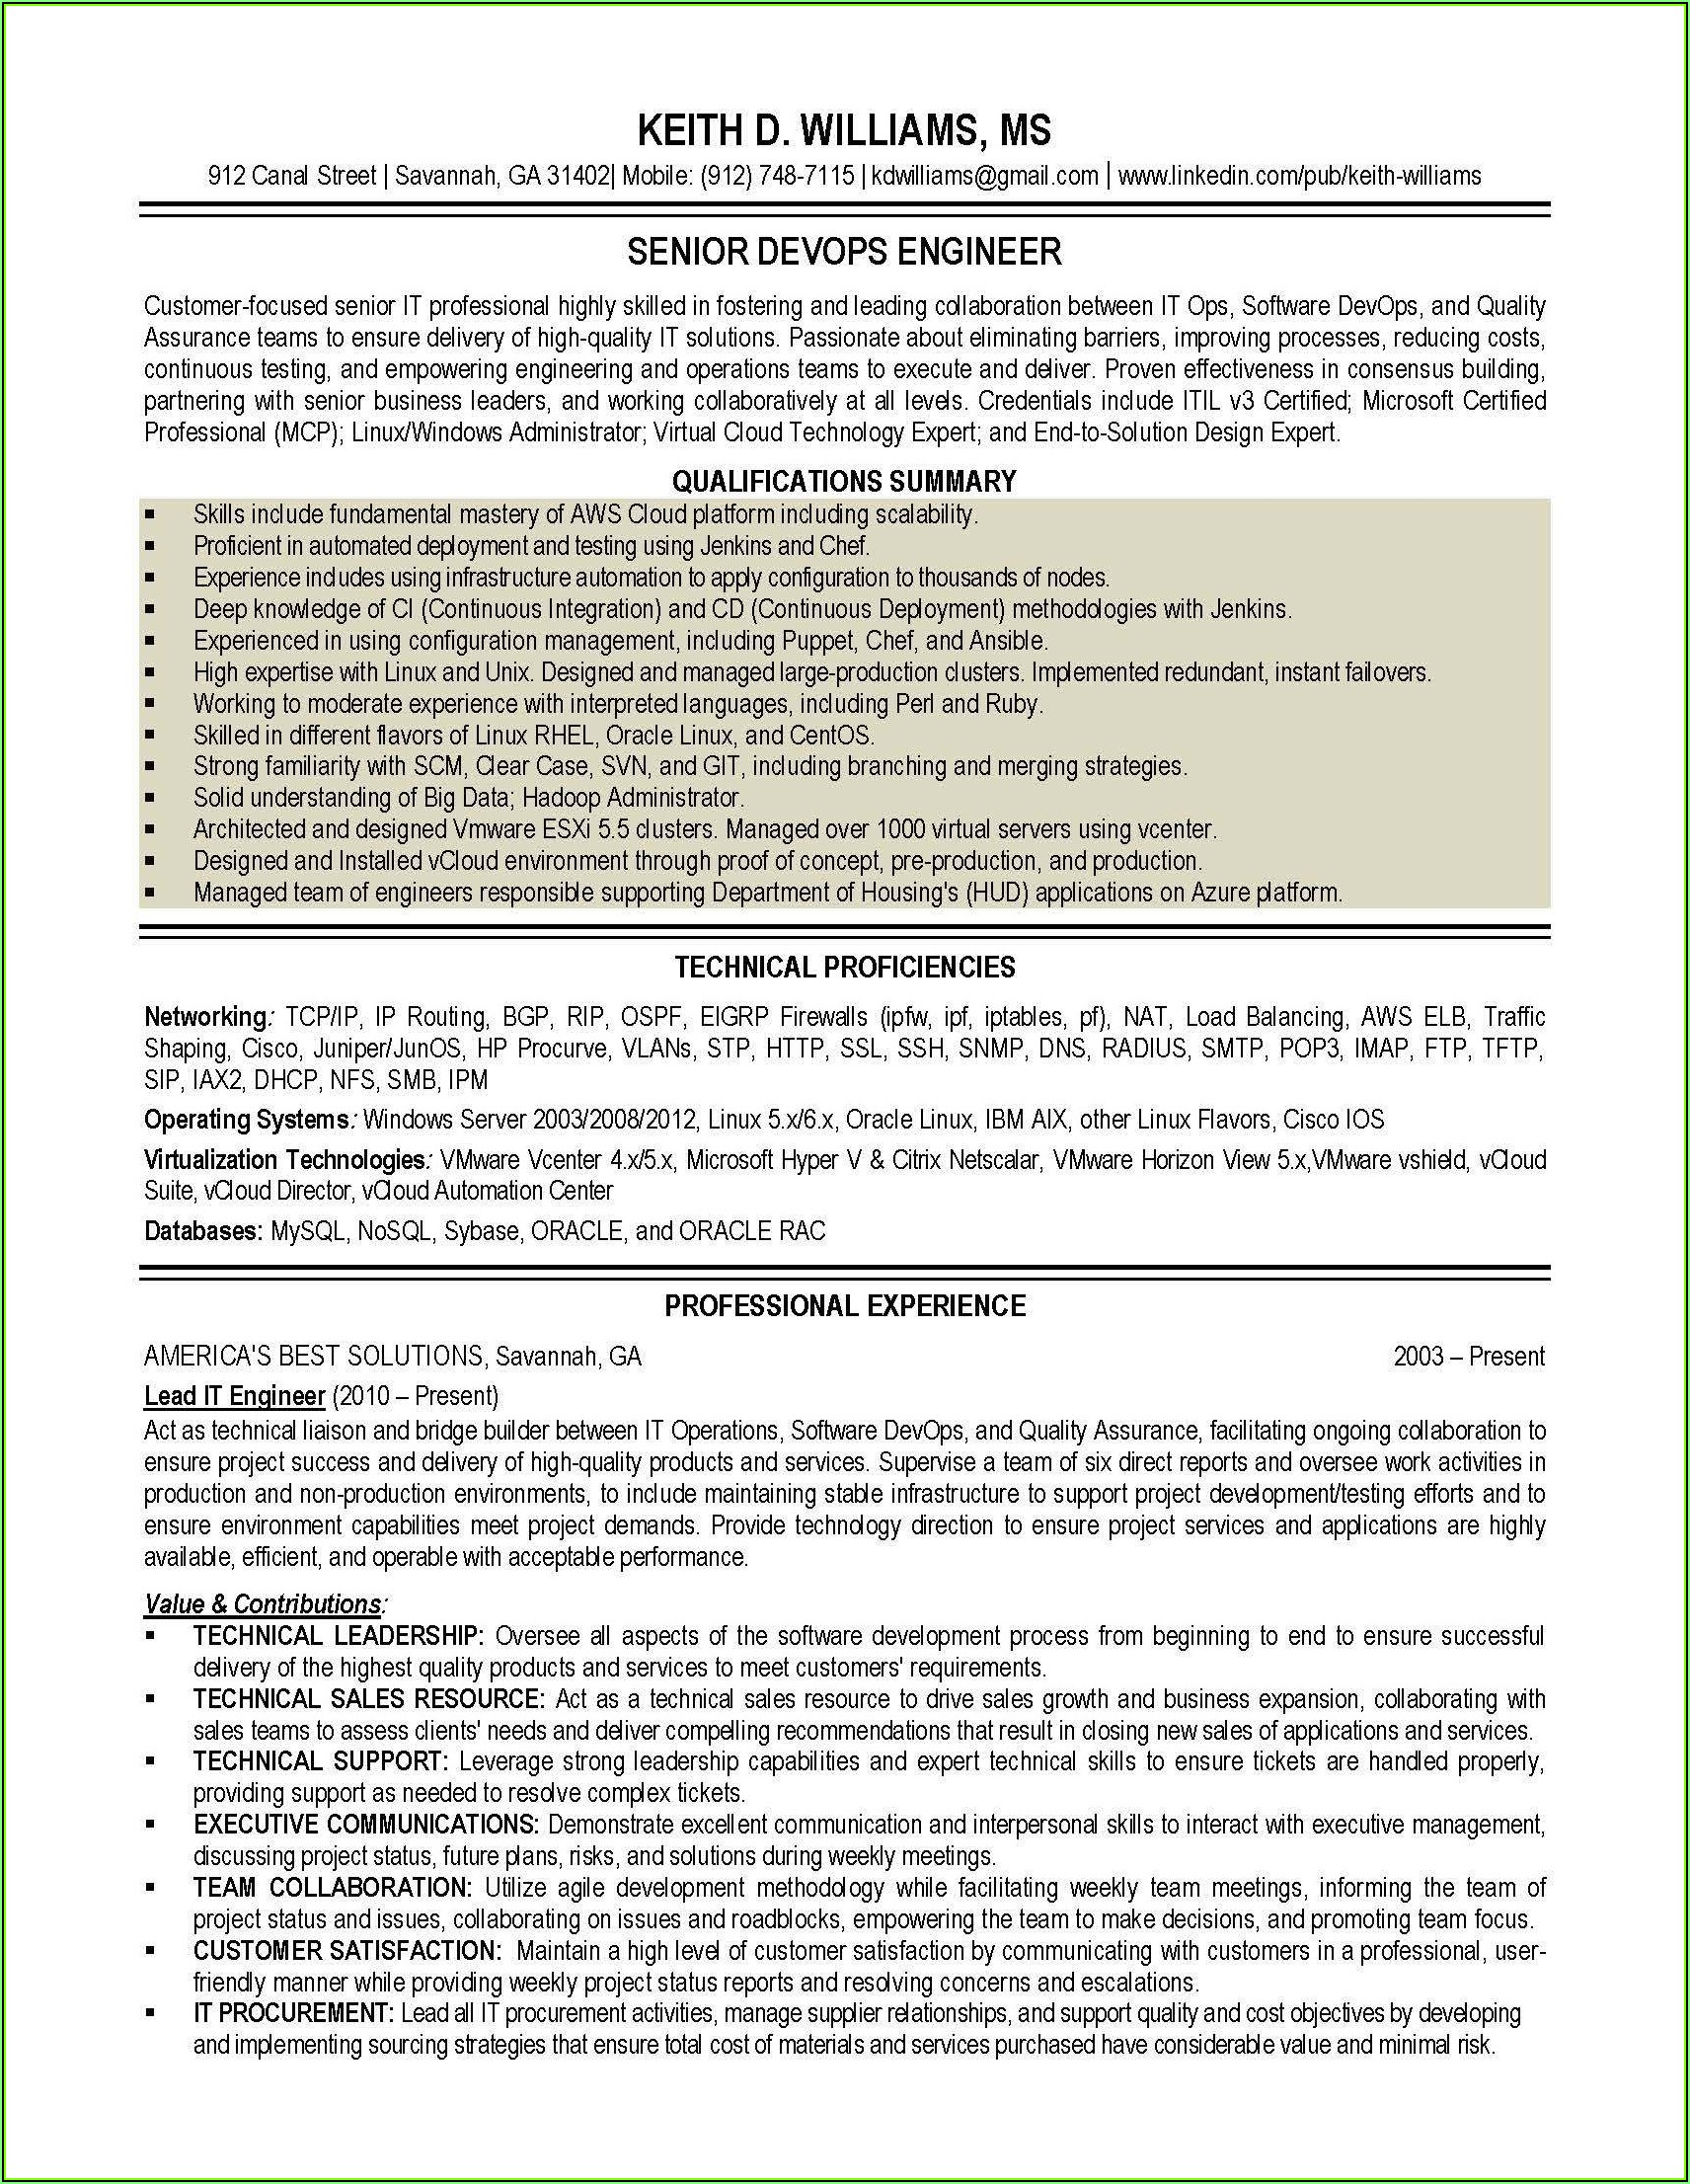 Resume Writing For Experienced Engineers